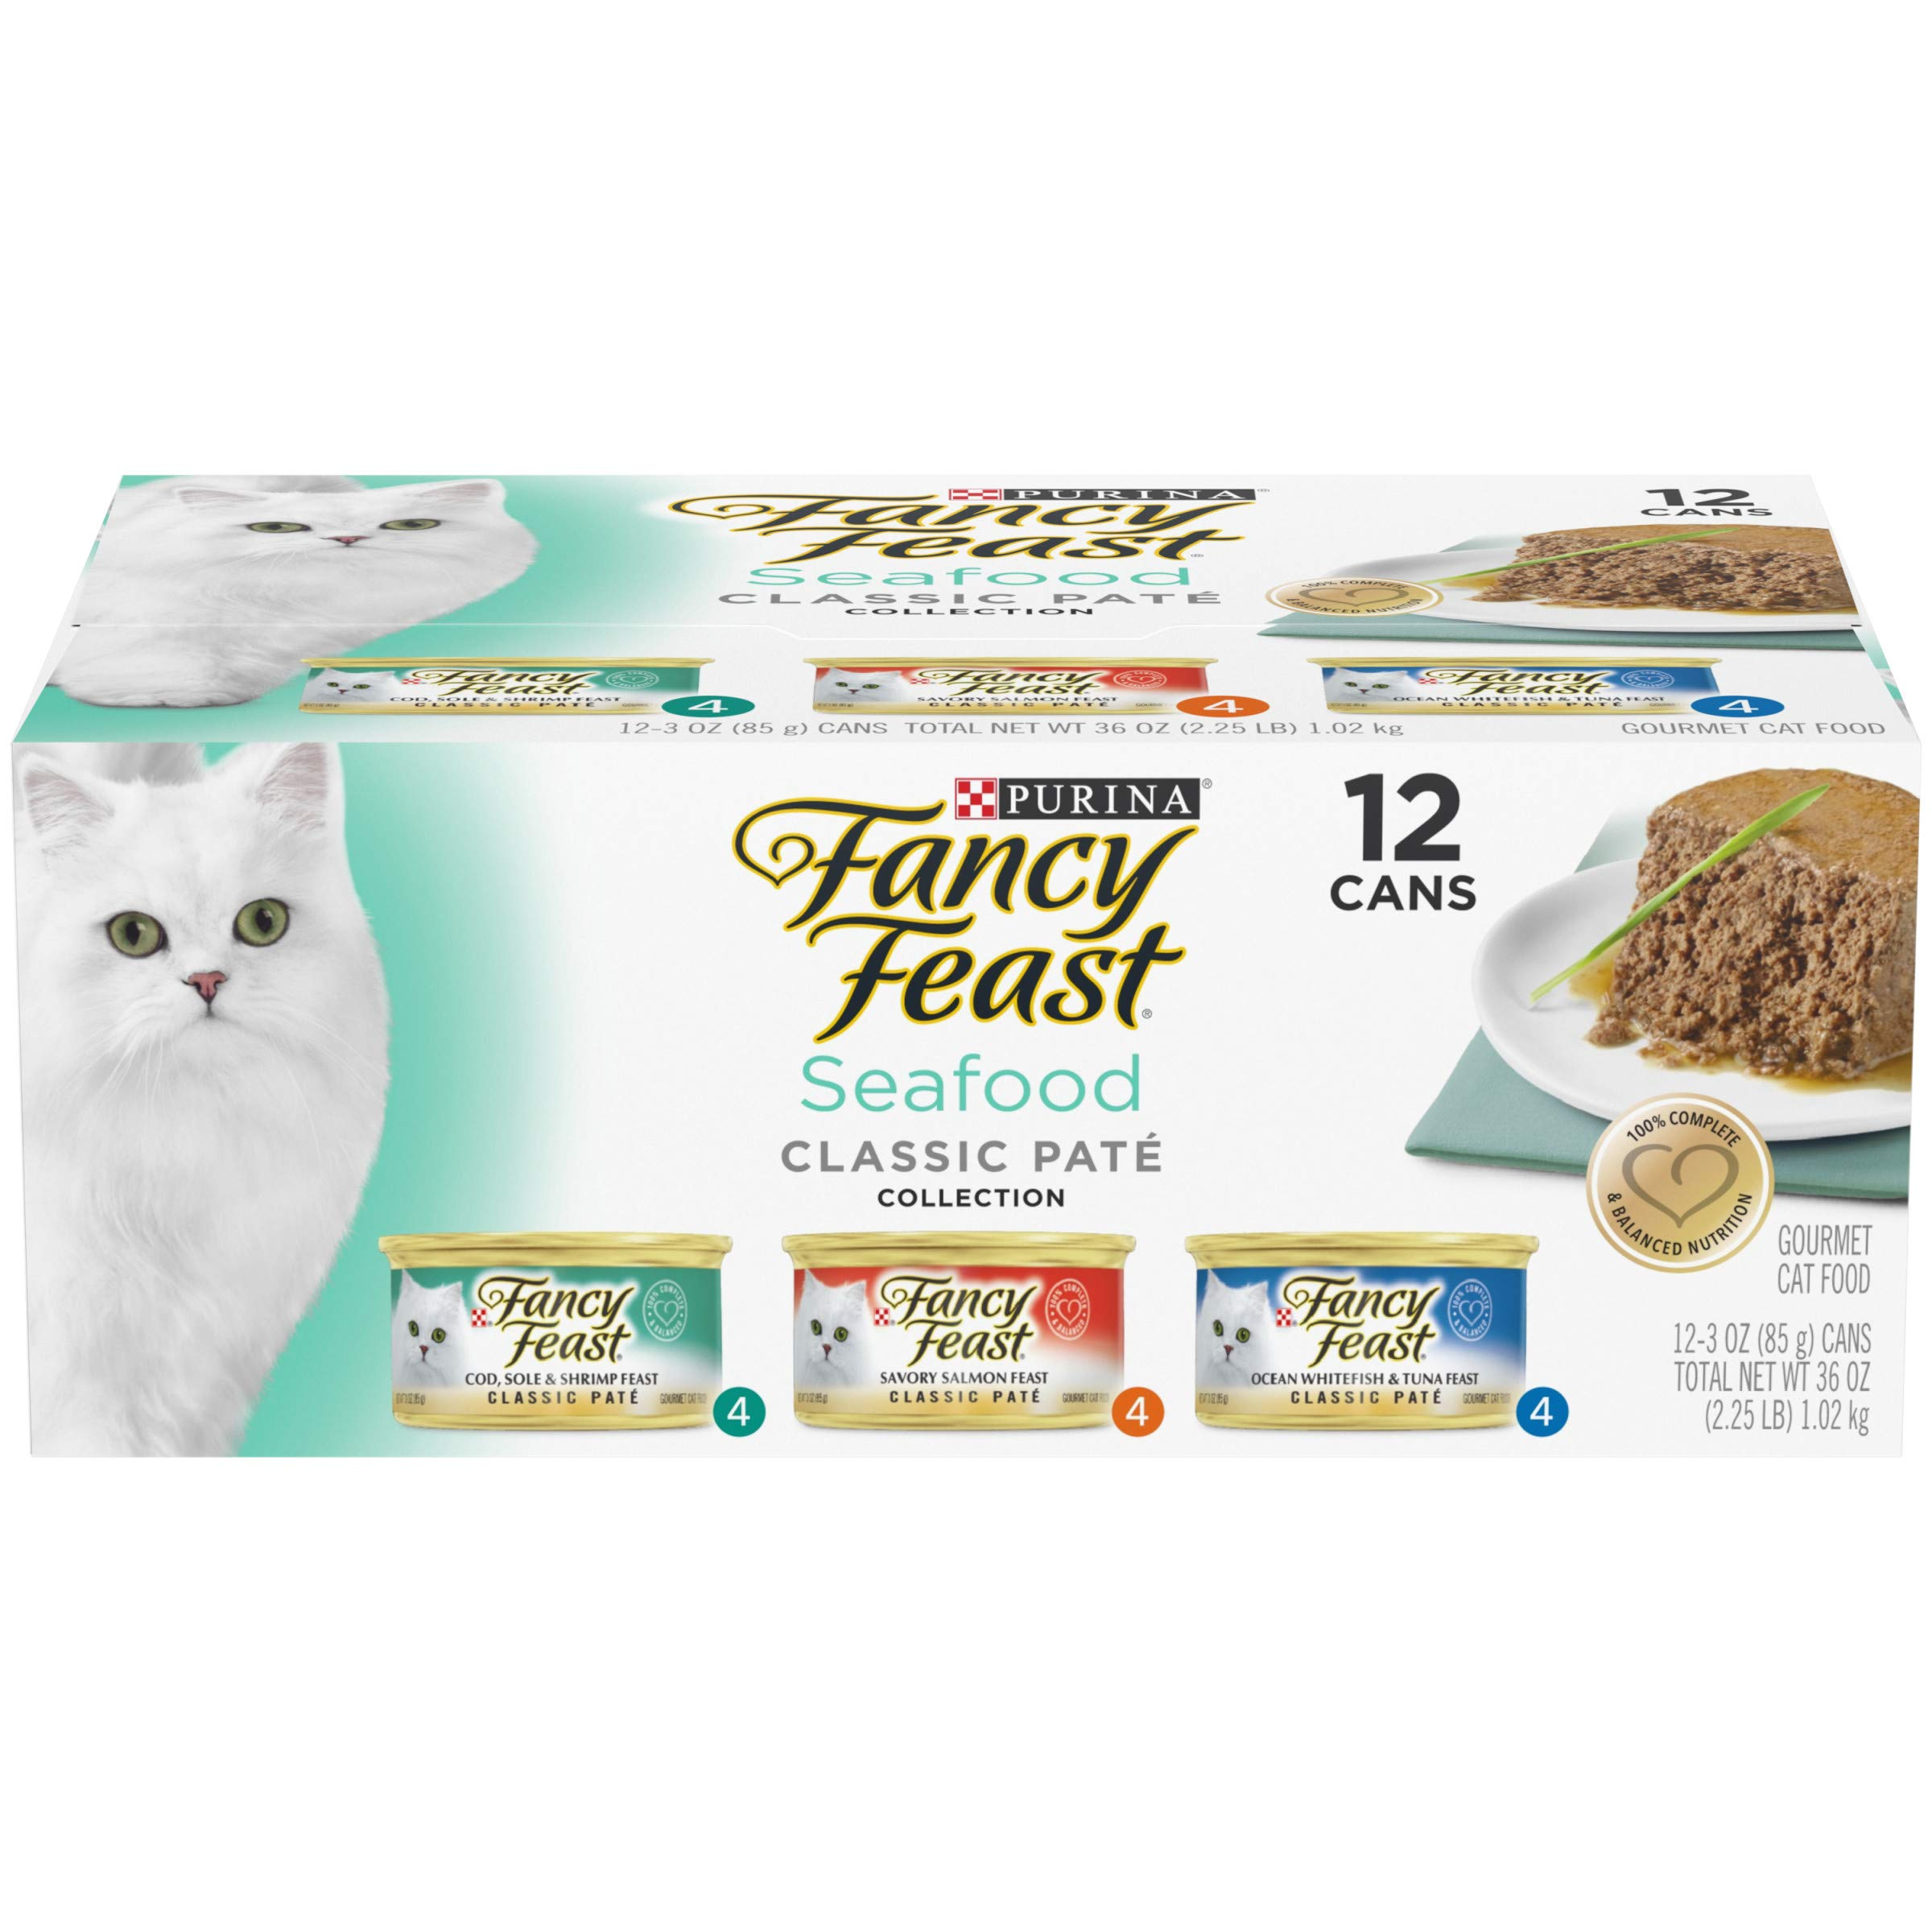 ba9c105a9 Purina Fancy Feast Grain Free Pate Wet Cat Food Variety Pack; Seafood  Classic Pate Collection